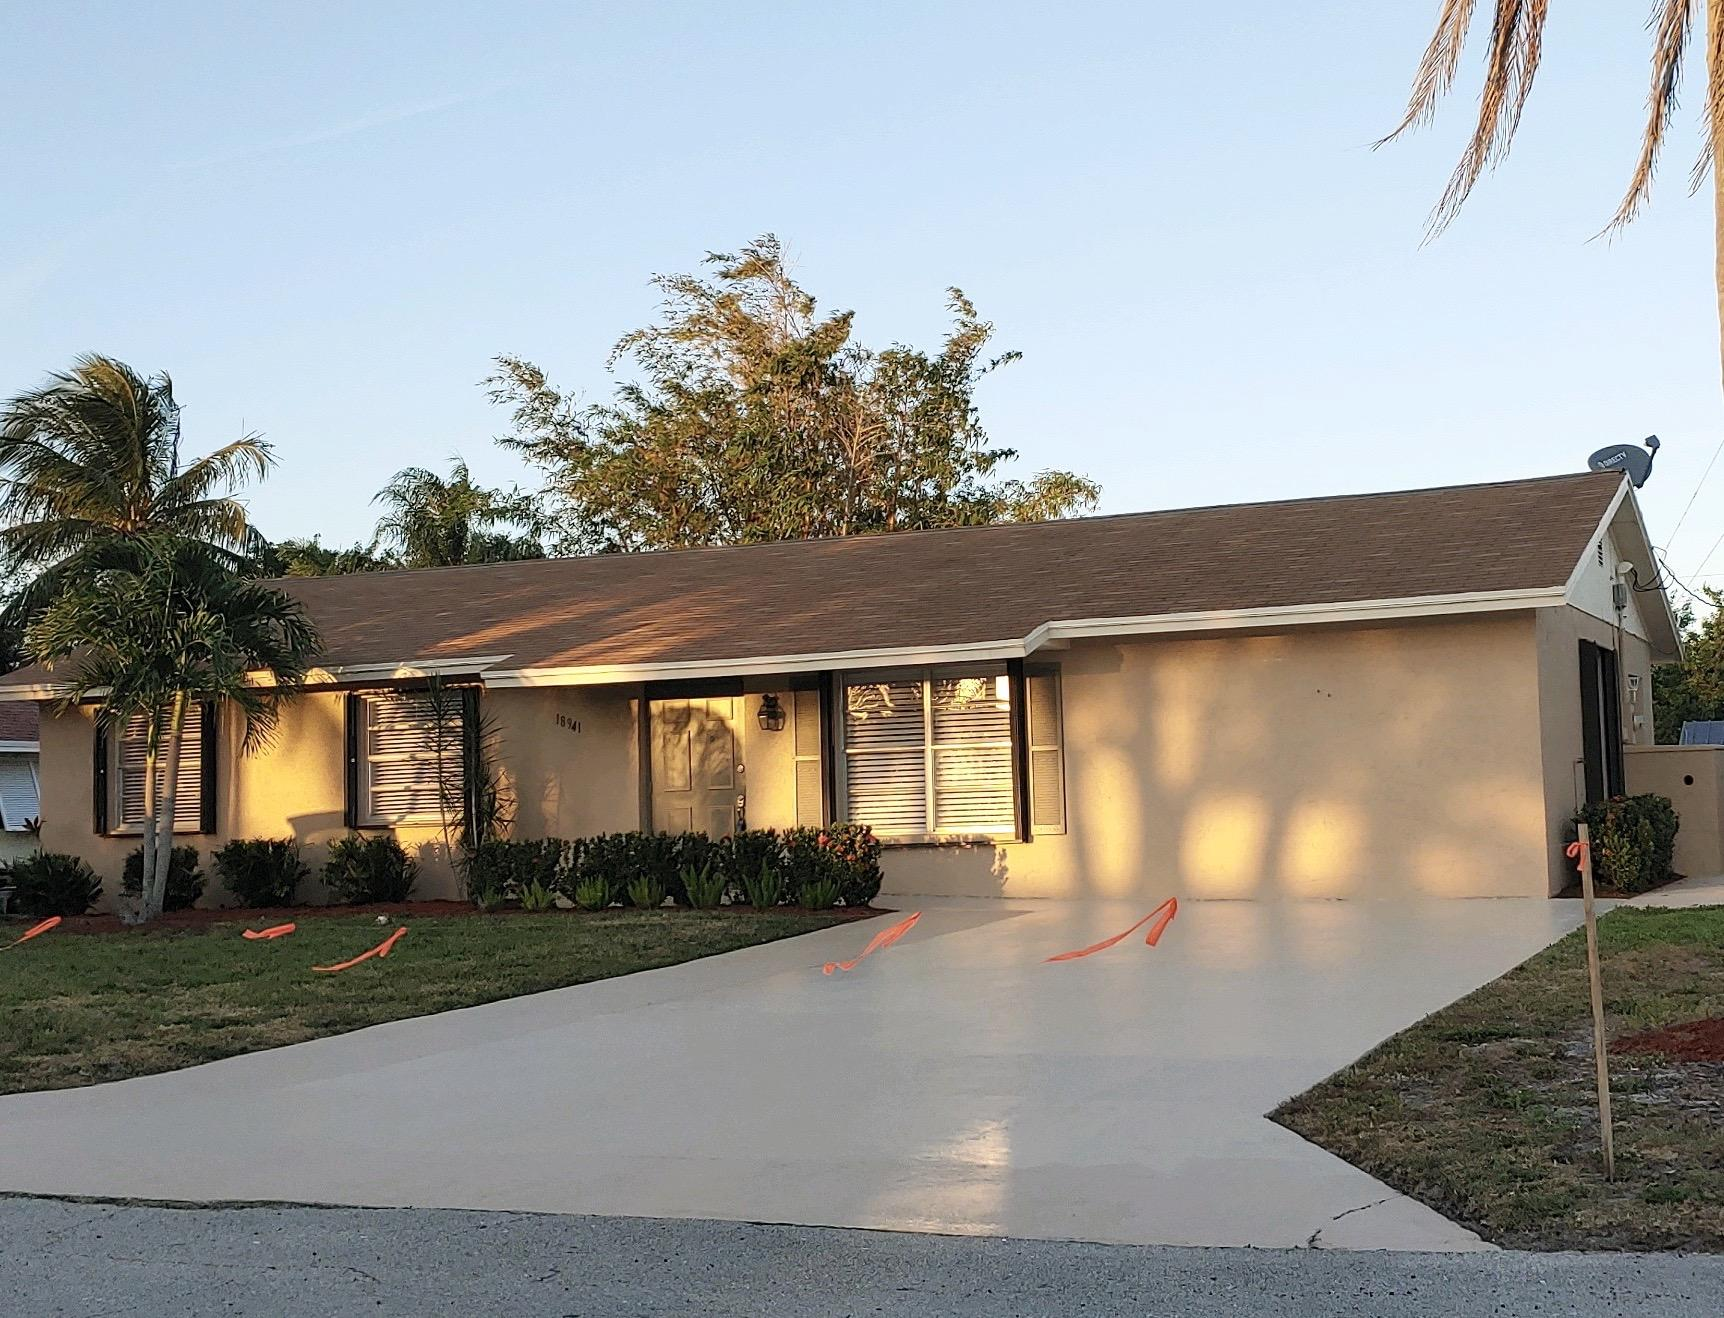 New Home for sale at 18941 Suddard Drive in Tequesta